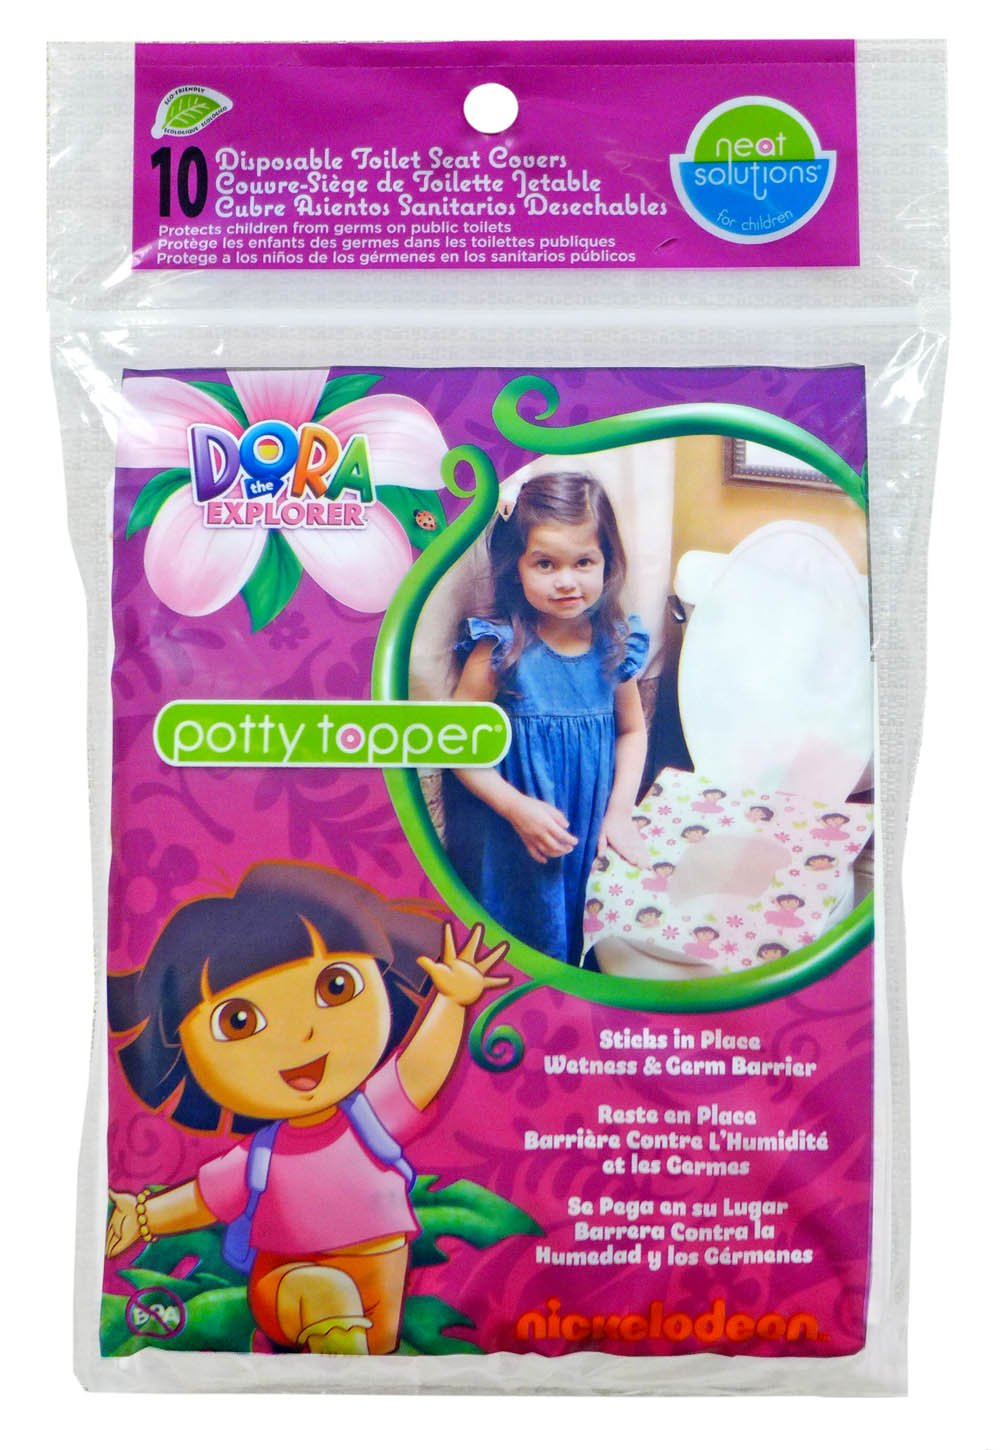 Neat Solutions Dora the Explorer Potty Topper Disposable Stick-in-Place Toilet Seat Covers, 10-Count